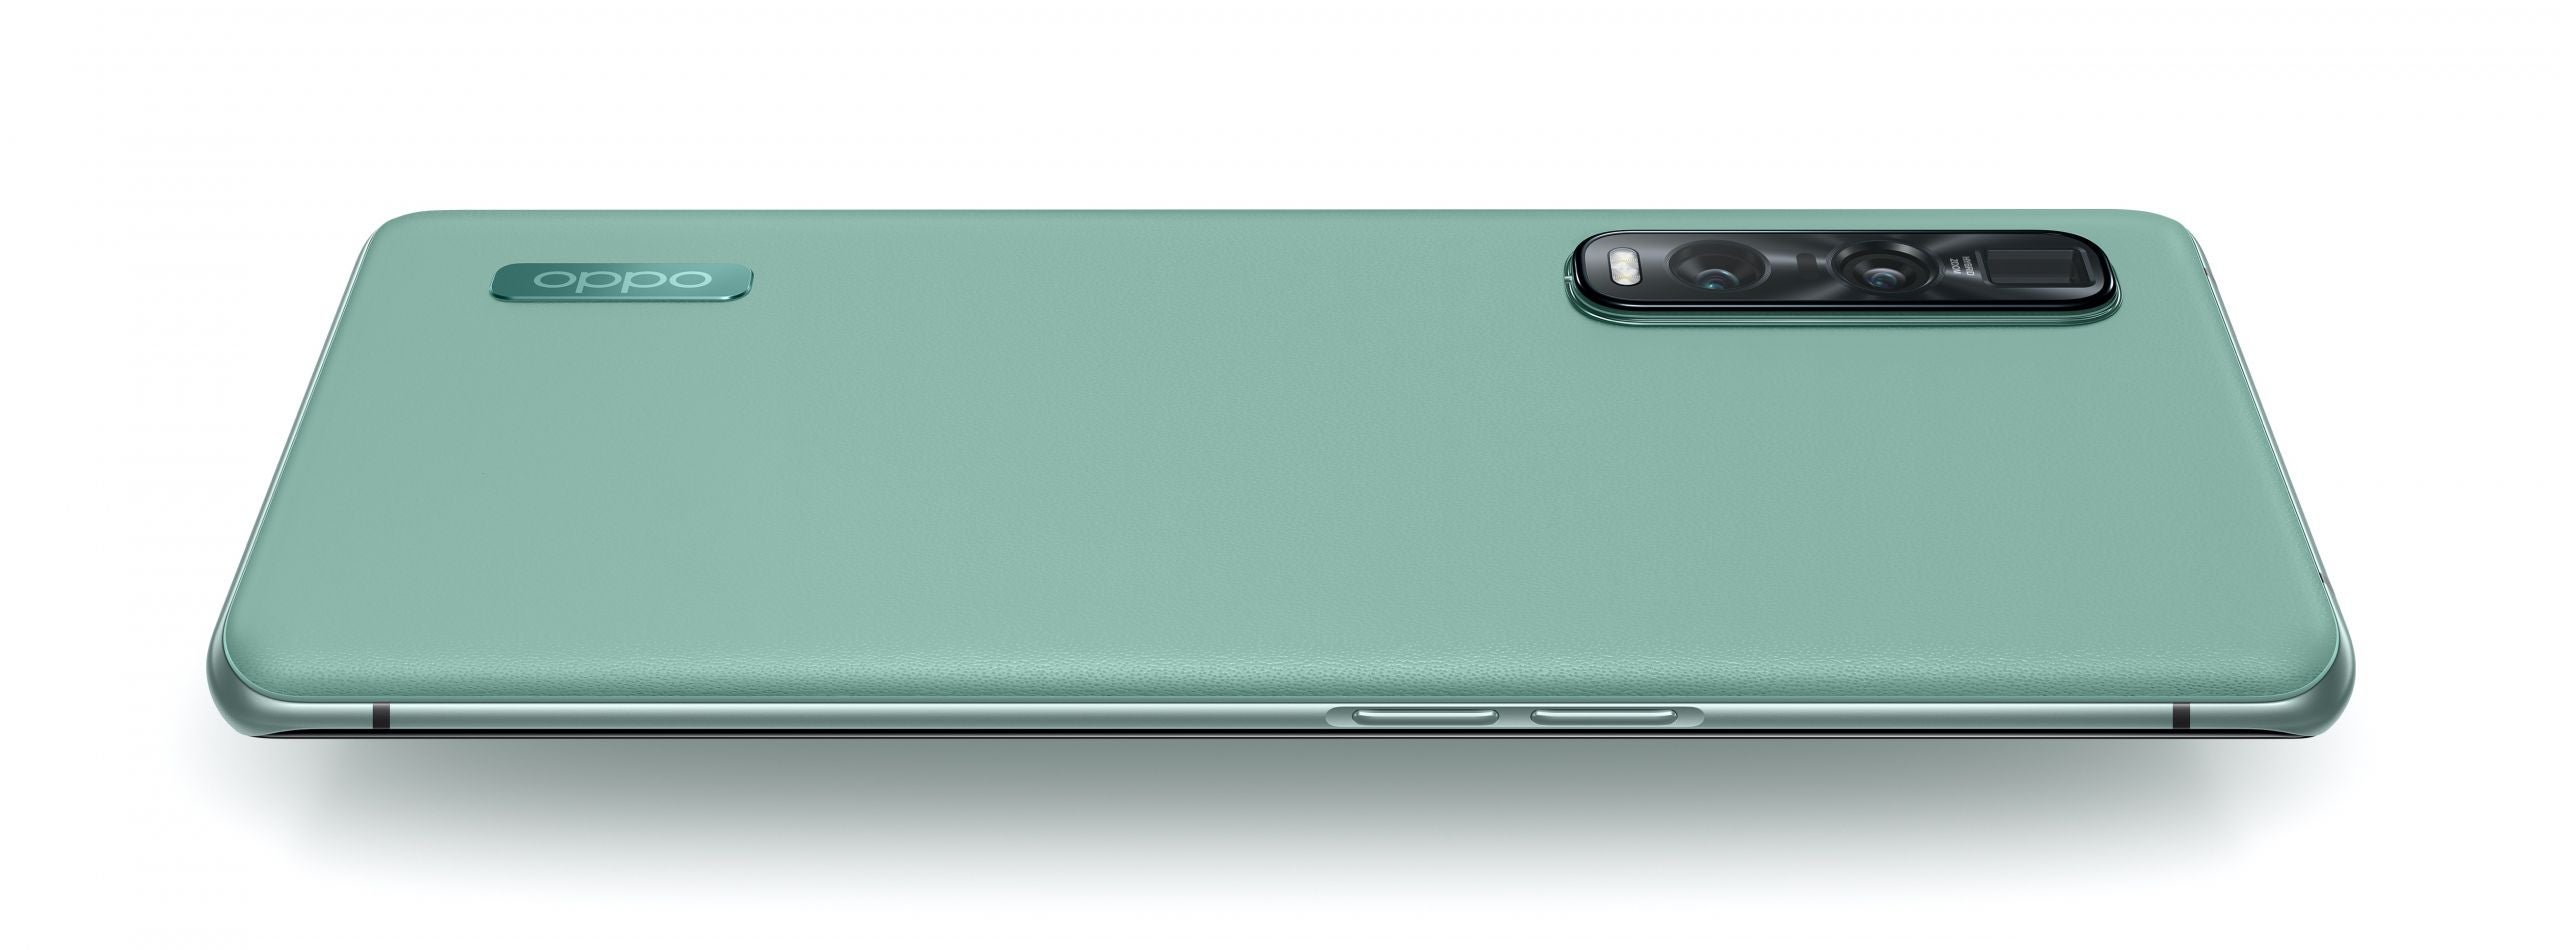 The back of the Find X2 Pro, an OPPO smartphone